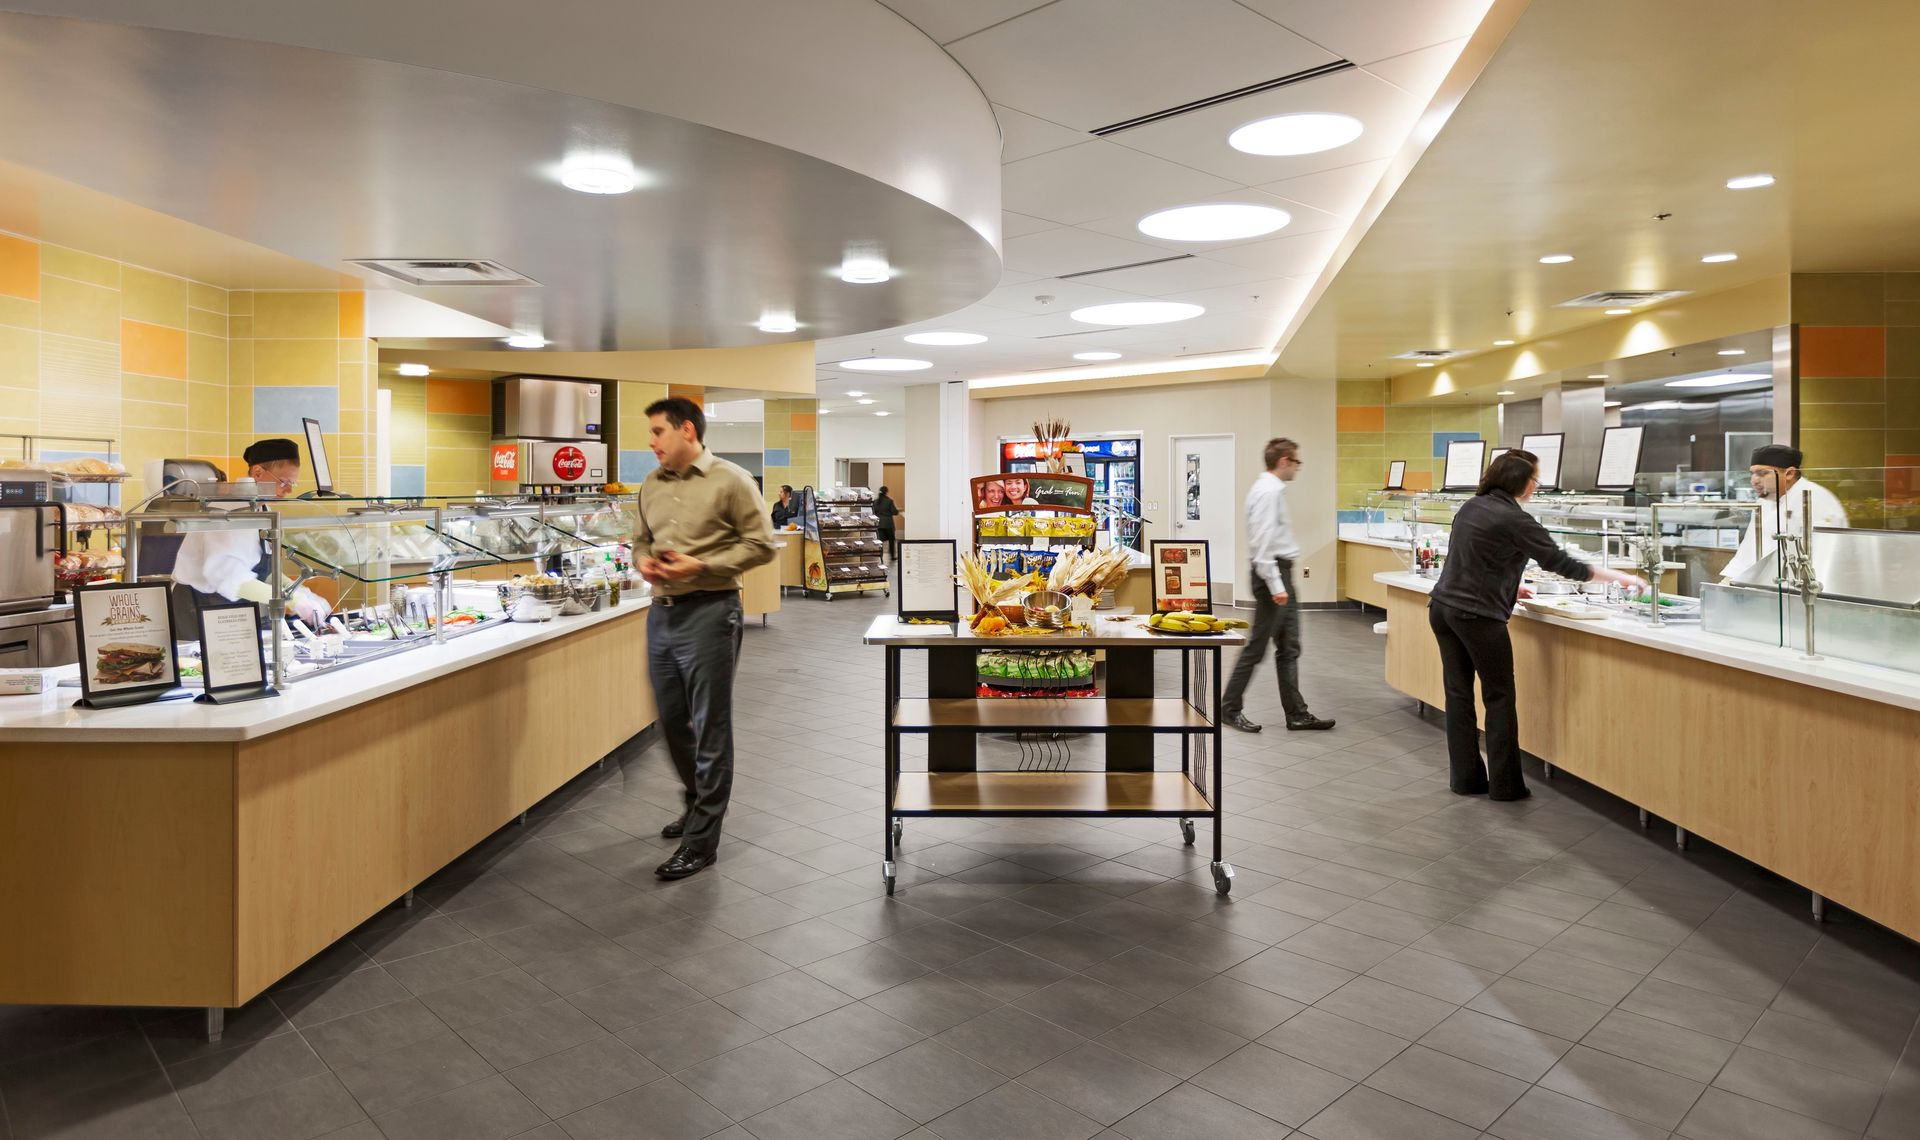 The cafeteria at the CPG Corporate office in Shoreview, Minnesota, by HCM Architects.